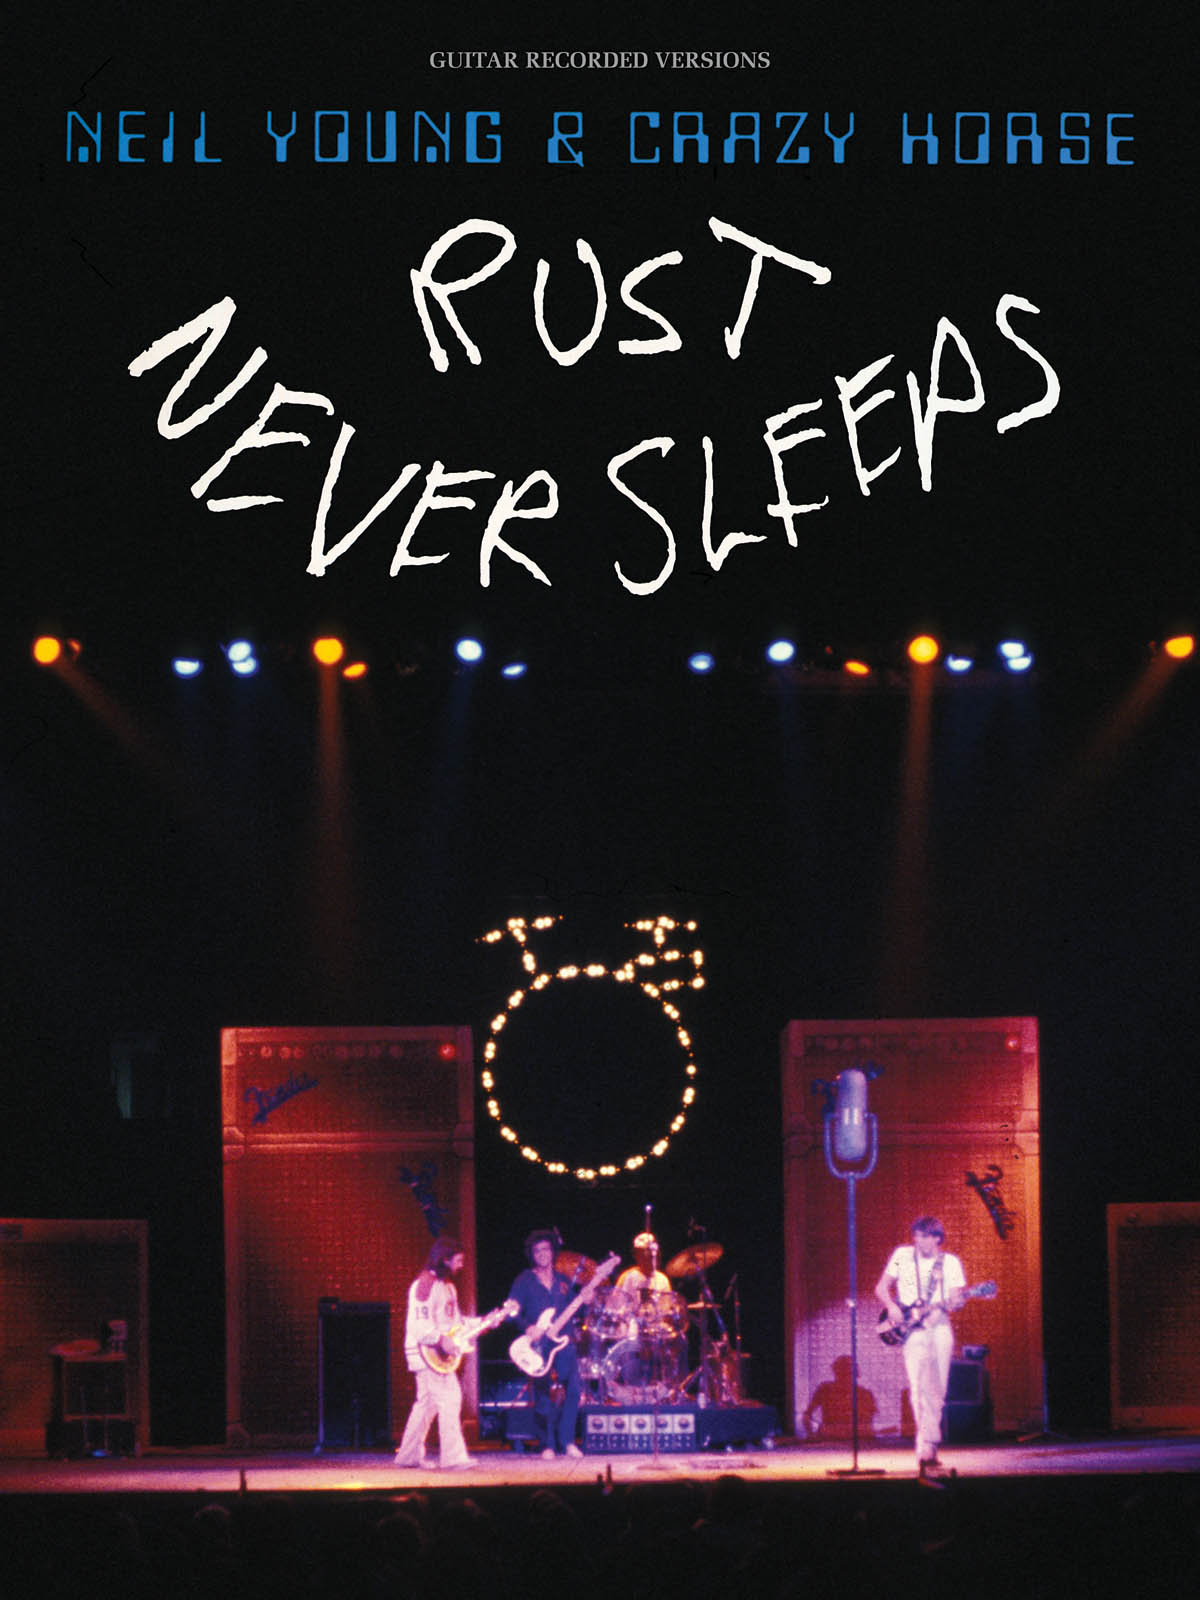 Neil Young: Neil Young - Rust Never Sleeps: Guitar Solo: Album Songbook